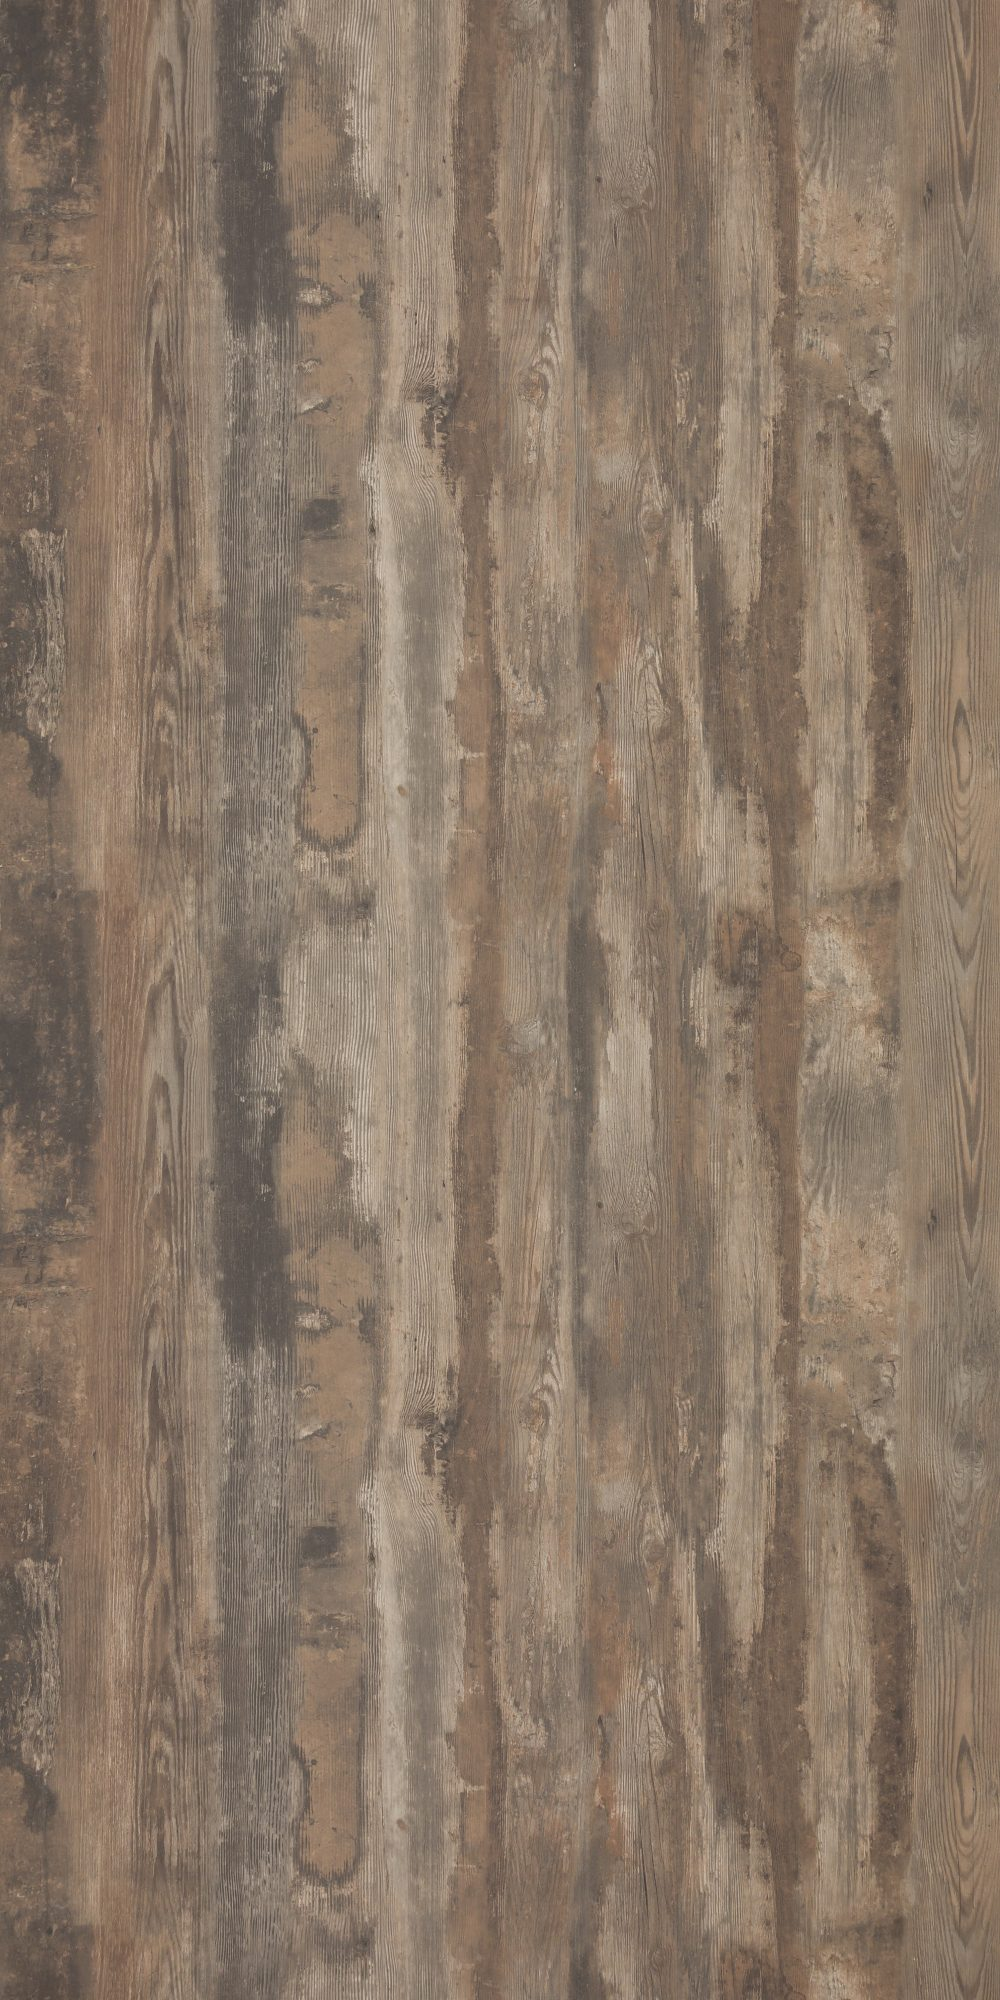 Decolegno - HPL Specials - Pine Wood Brown Tekenprogramma 2440x1220mm